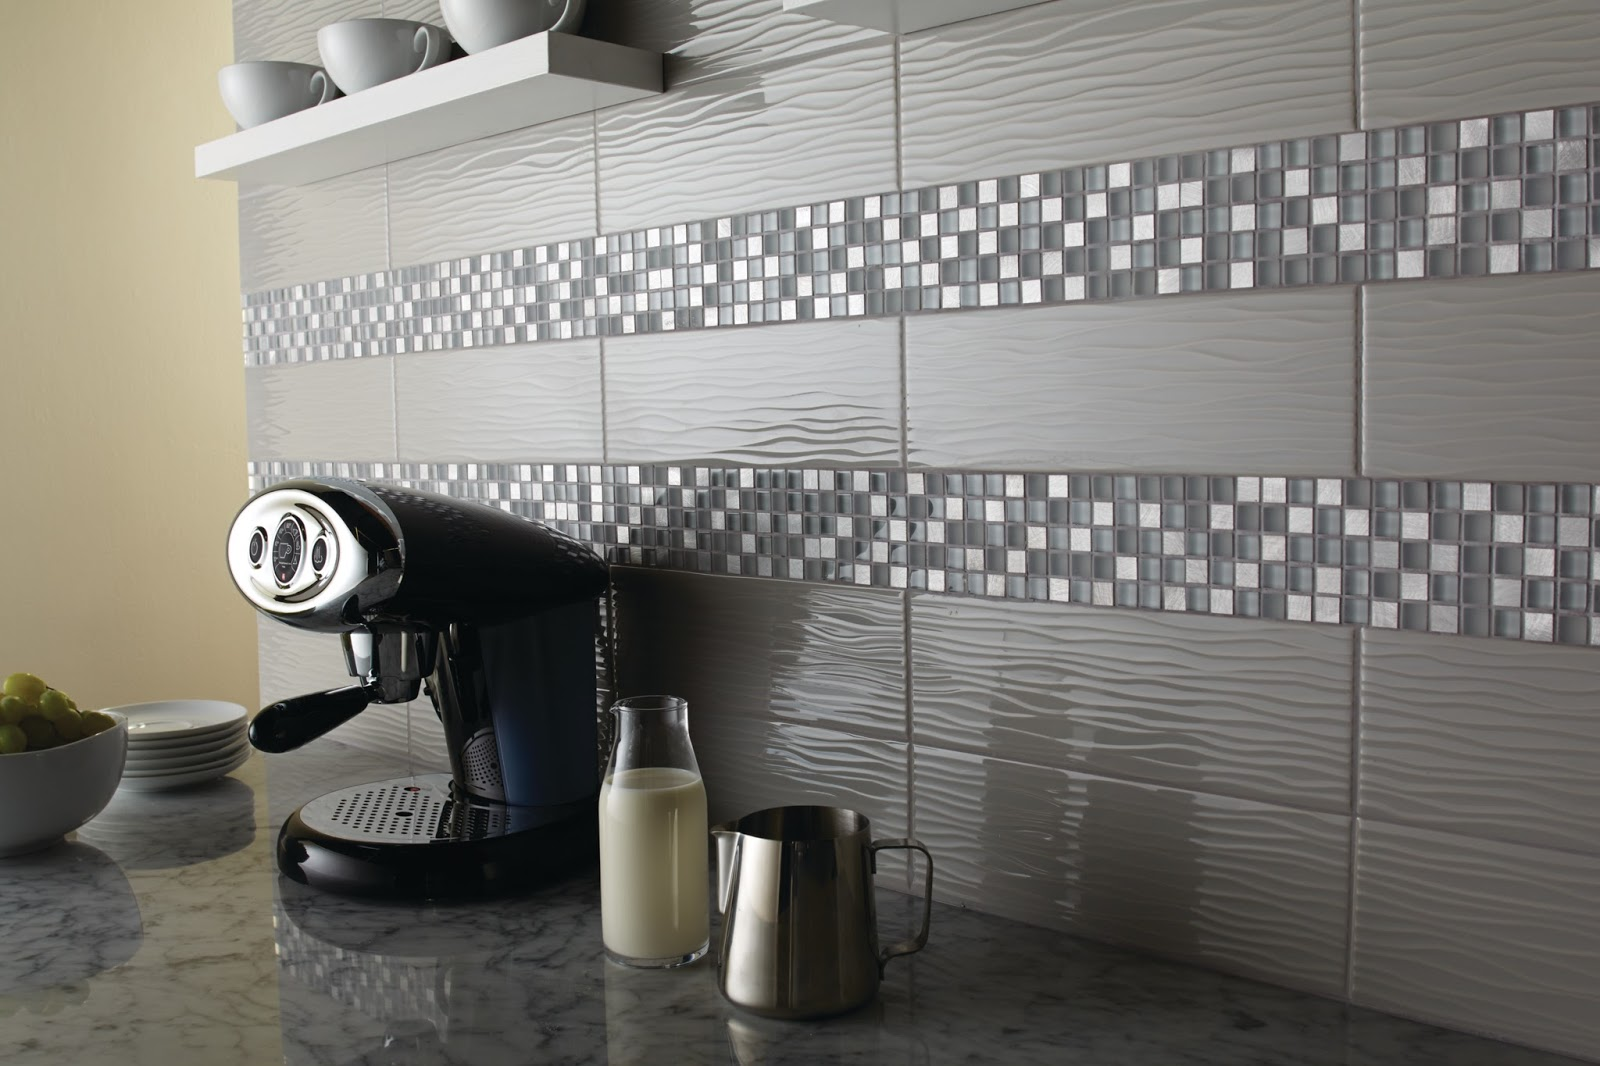 Isc surfaces great looks beyond the subway tile part 1 light smoke gloss 4 14x12 34 dailygadgetfo Image collections